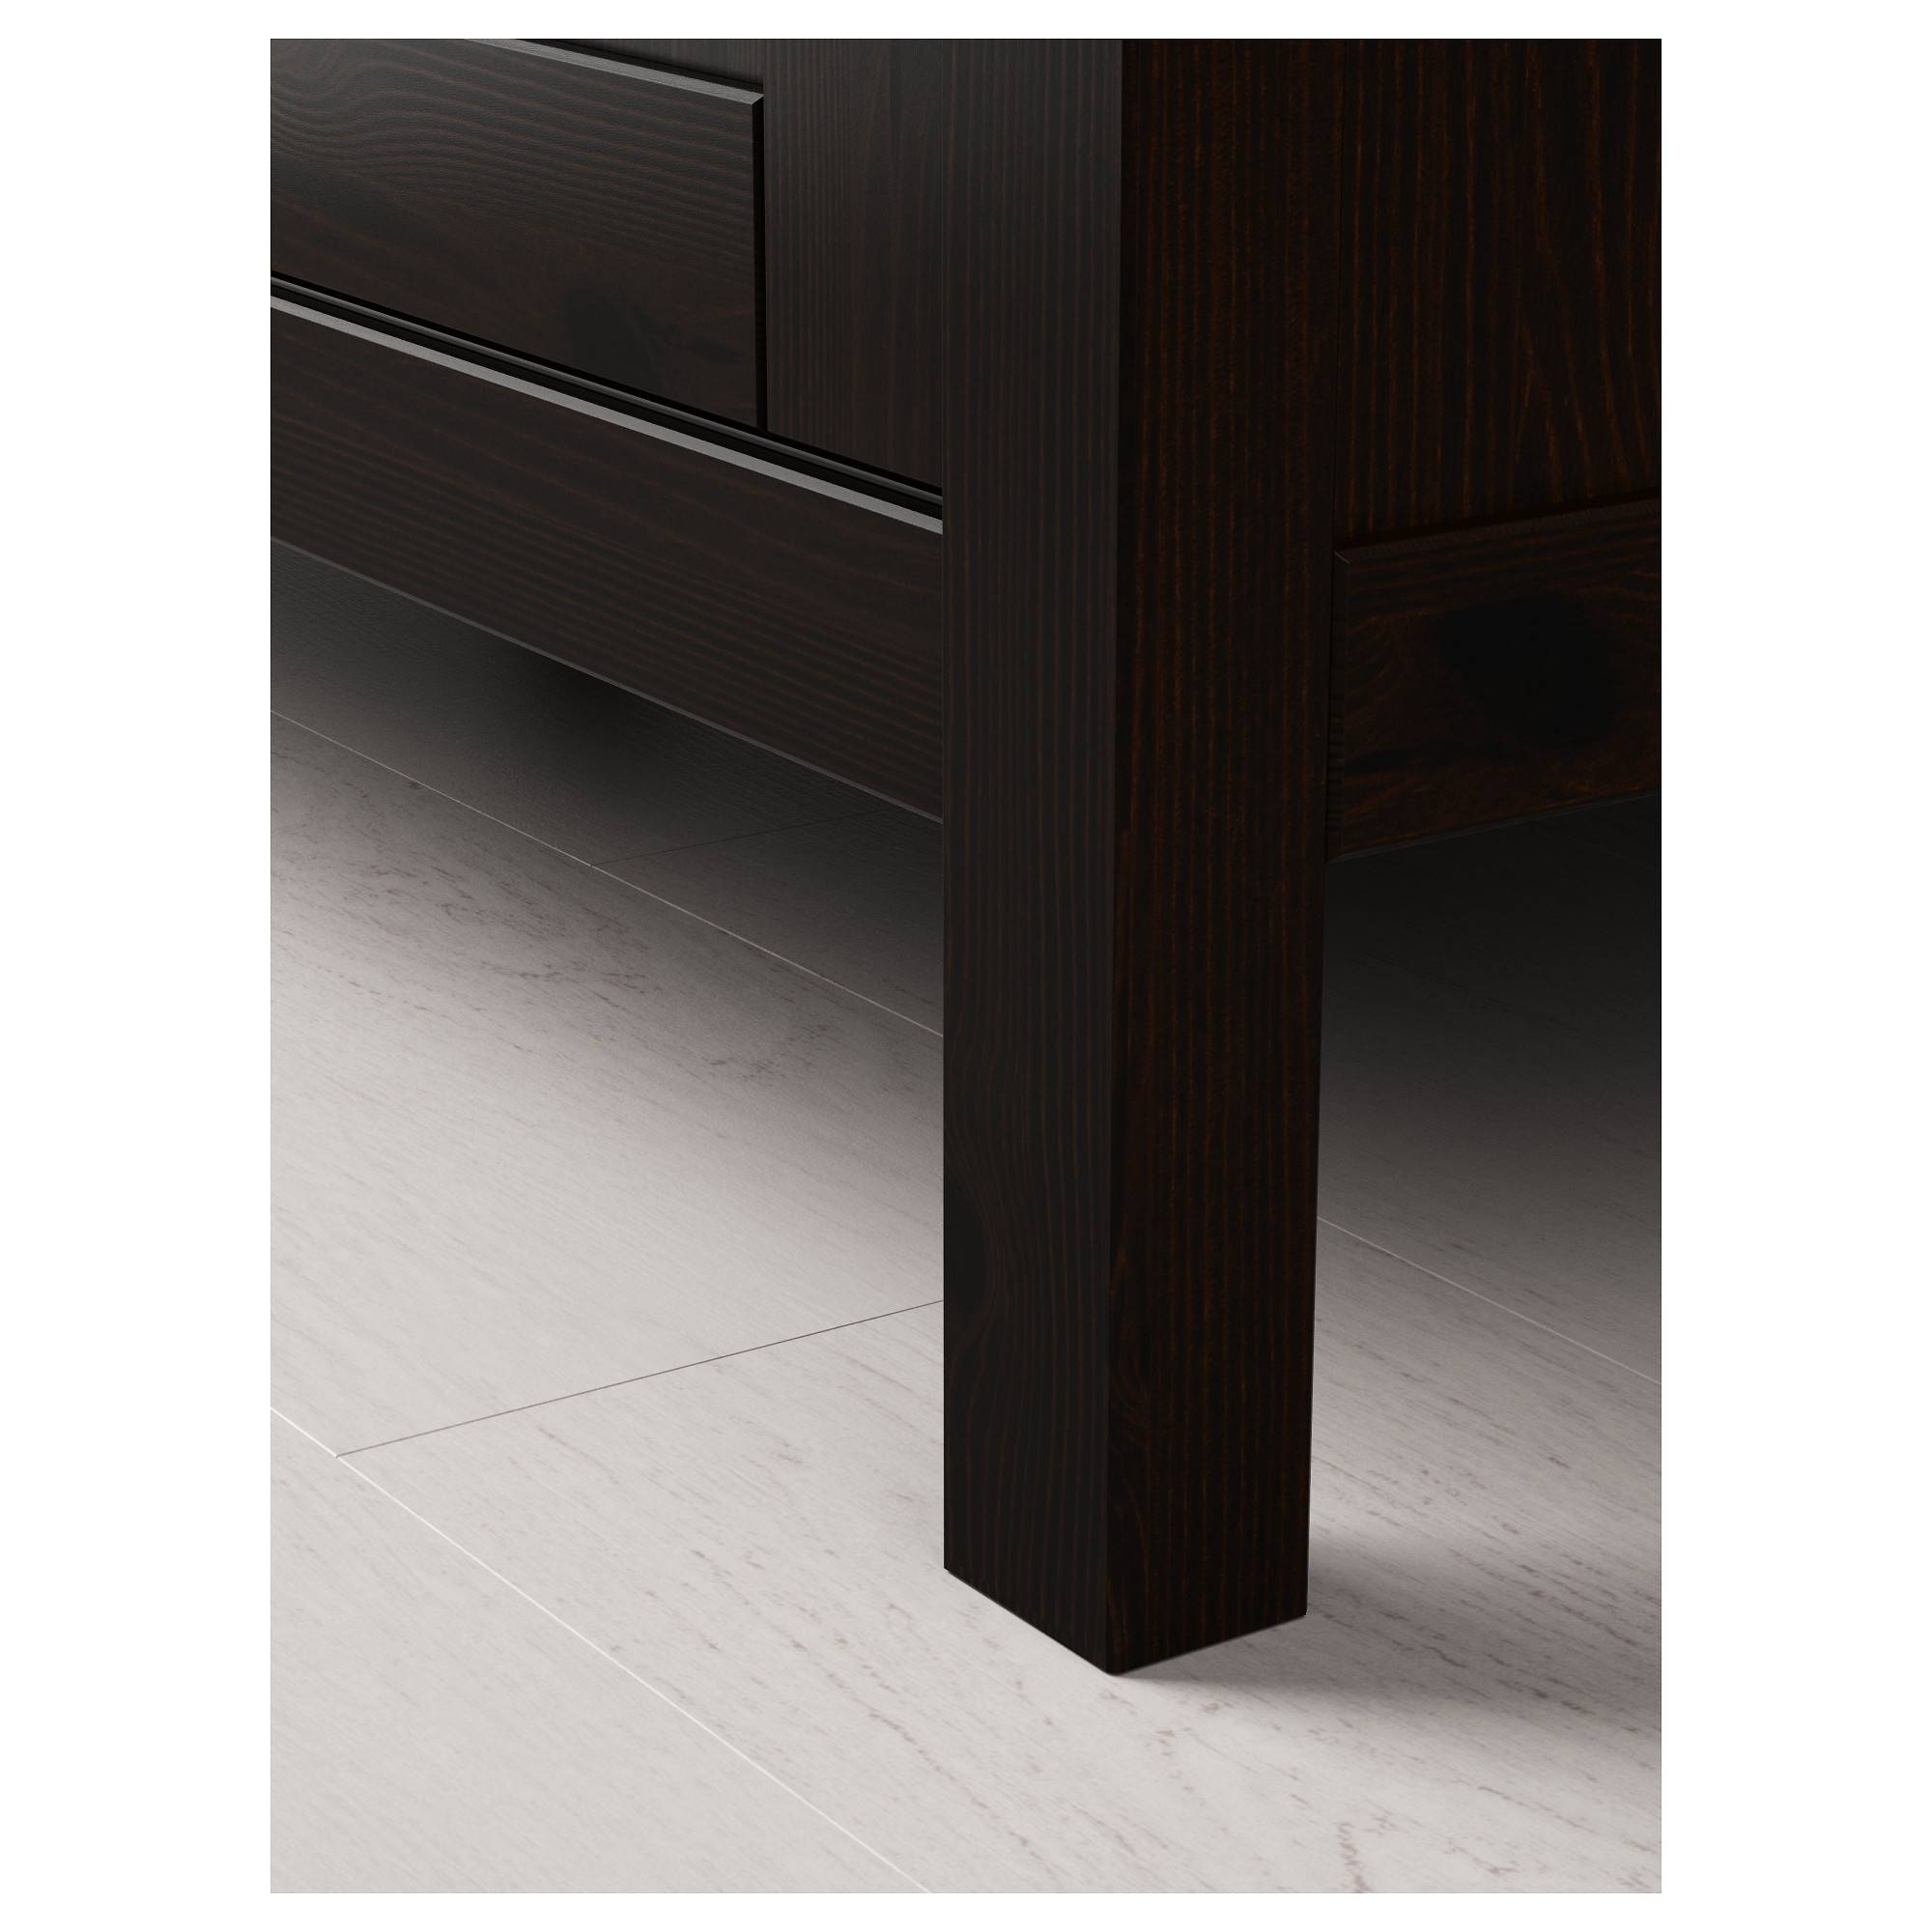 Hemnes Wardrobe With 2 Sliding Doors - Black-Brown - Ikea with Black Sliding Wardrobes (Image 4 of 15)